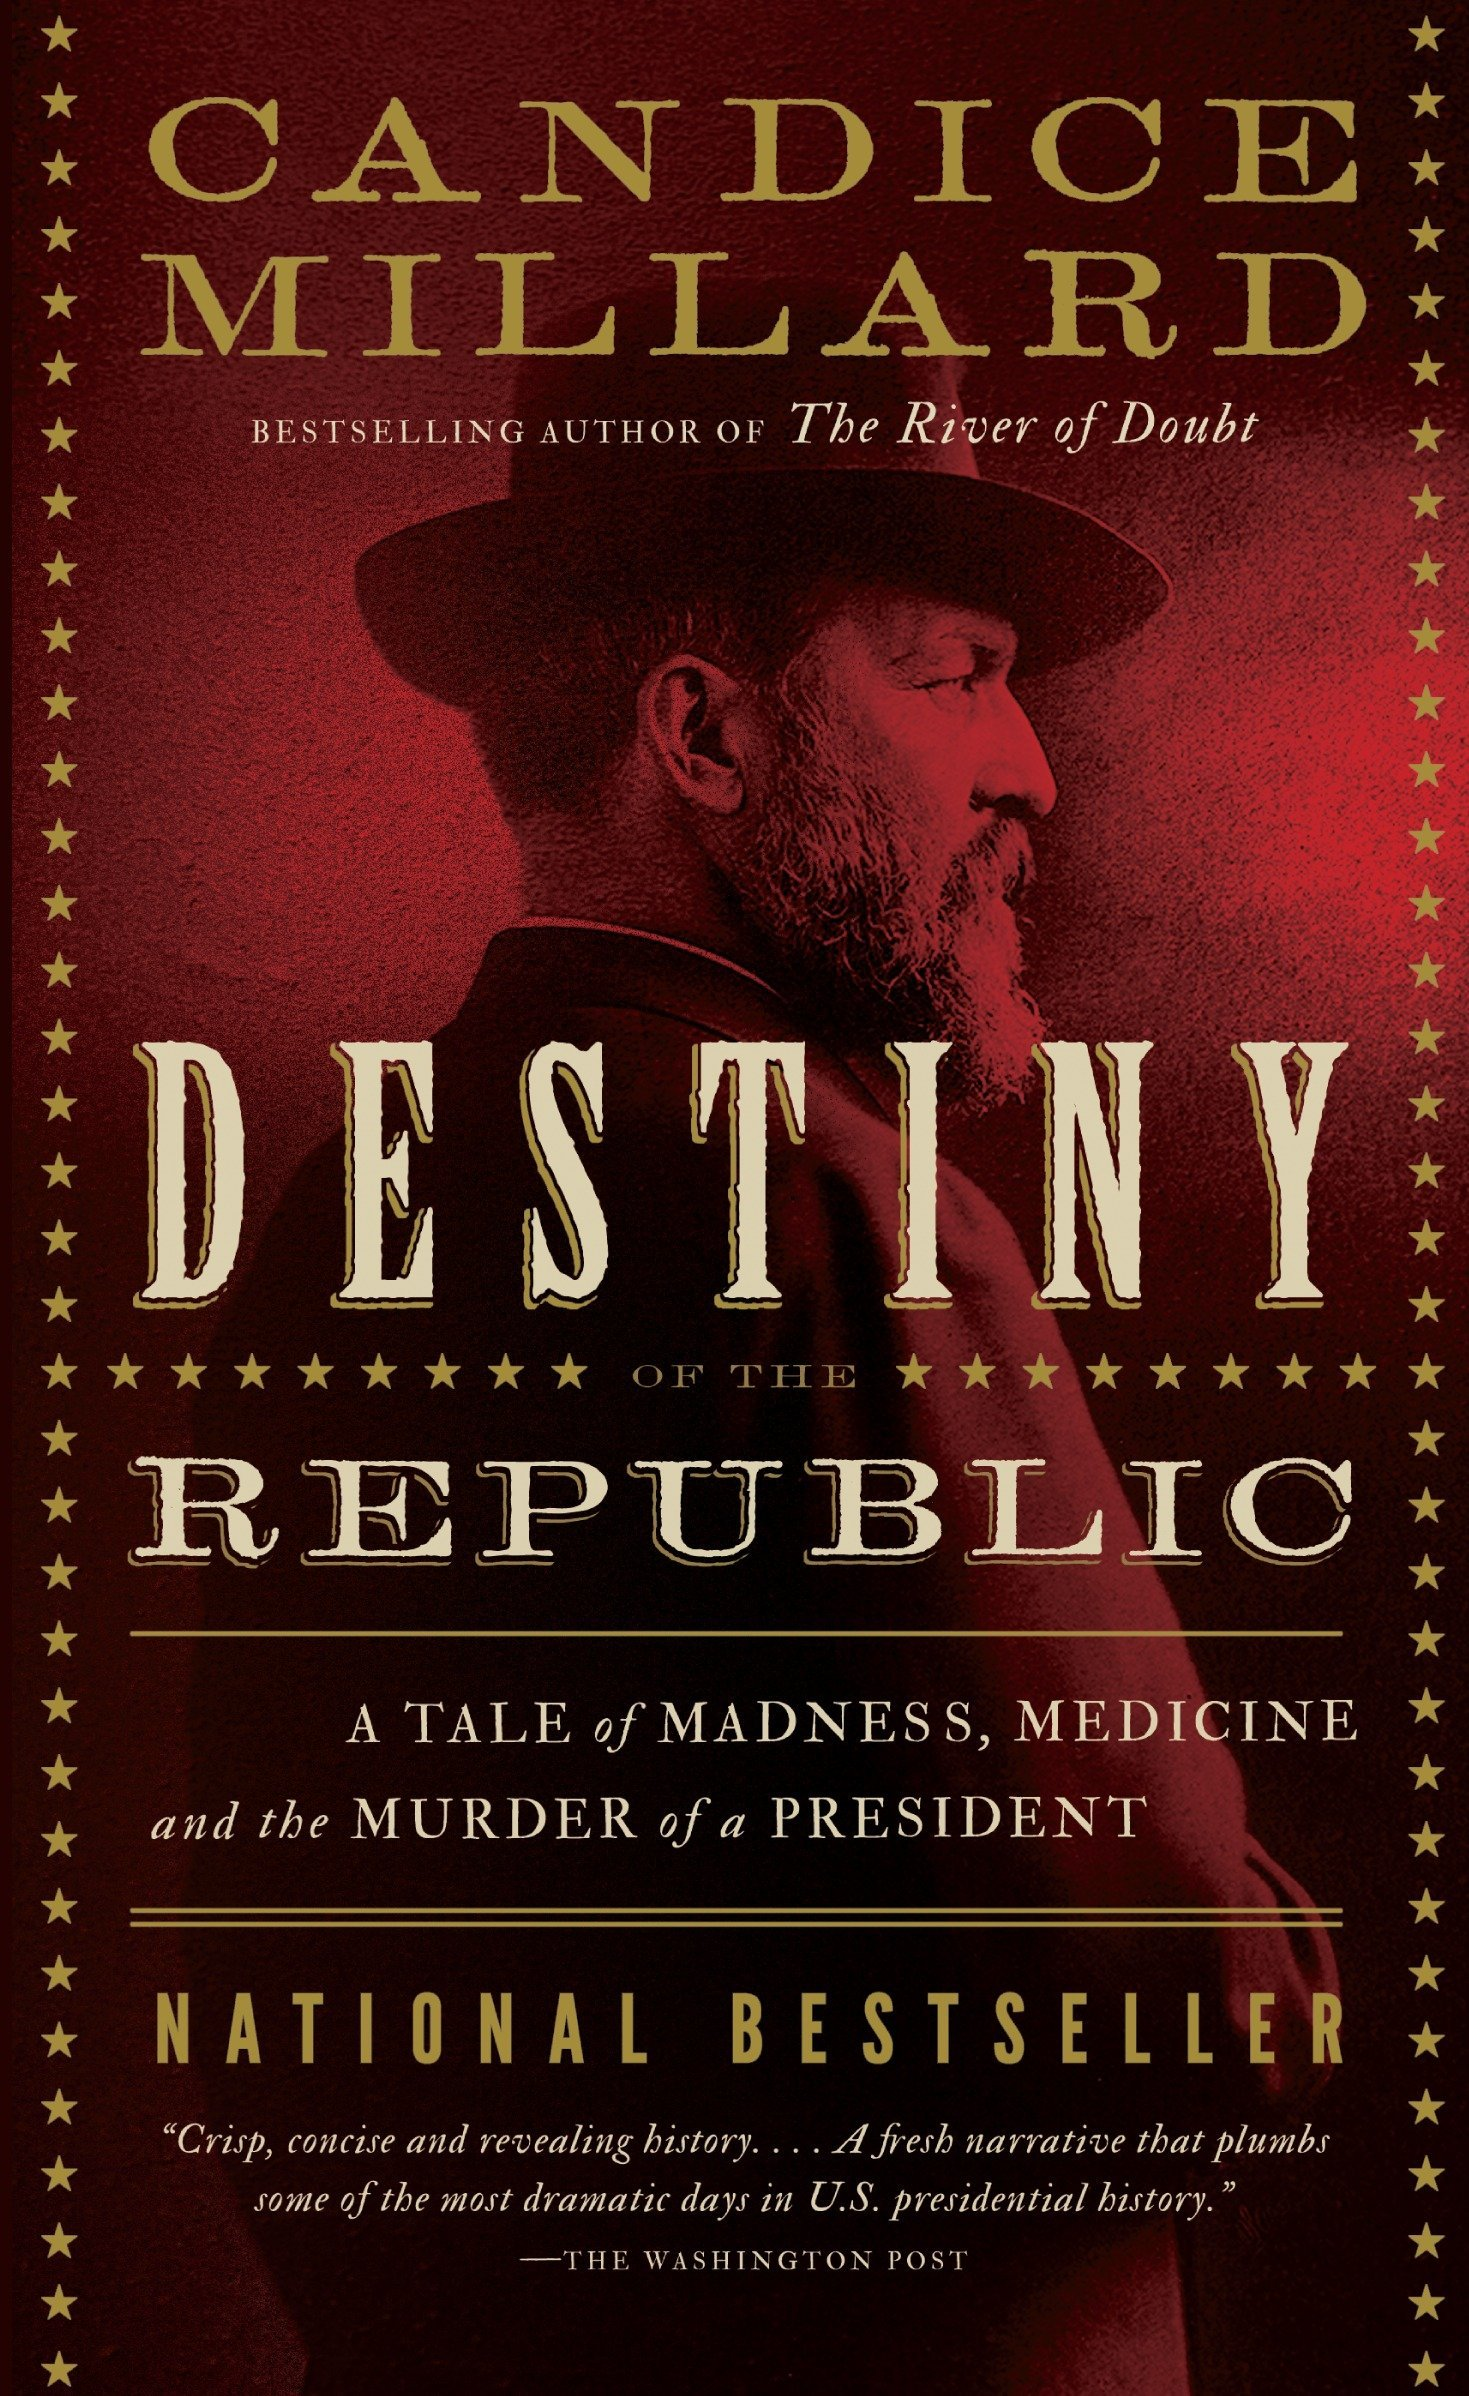 Amazon Com Destiny Of The Republic A Tale Of Madness Medicine And The Murder Of A President 9780767929714 Millard Candice Books